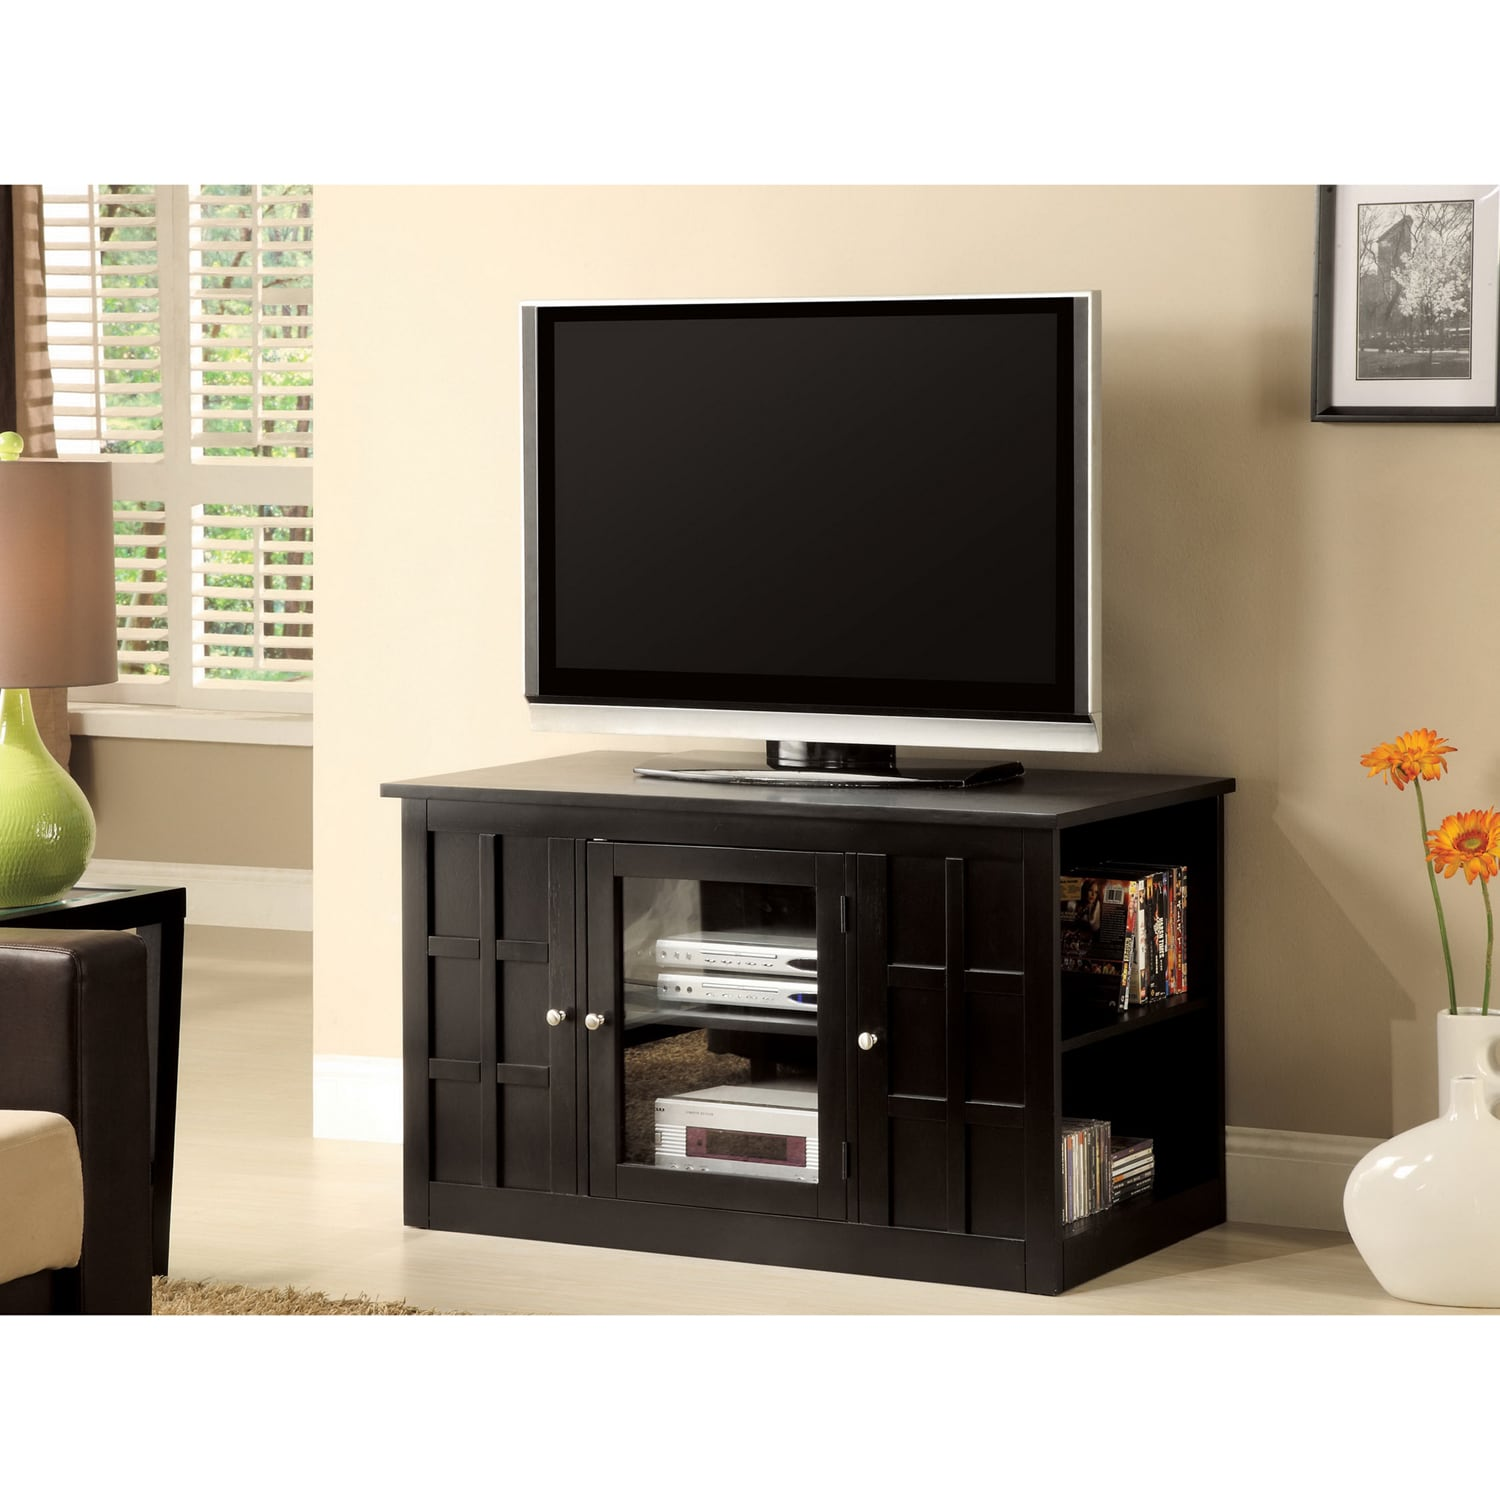 Furniture of America Woodwind Black Wood TV Console at Sears.com